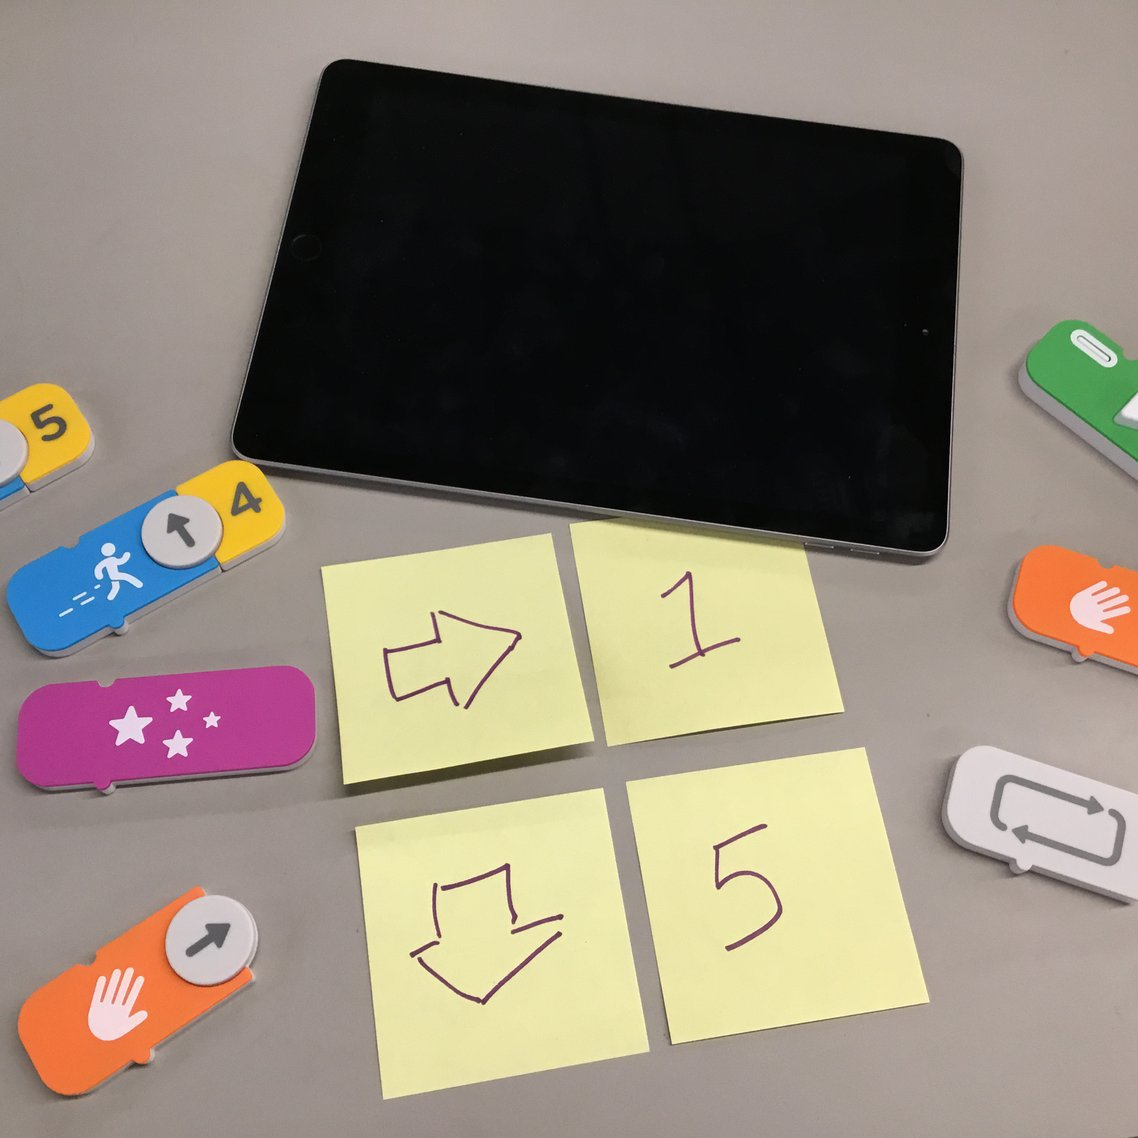 iPad used for online learning activities